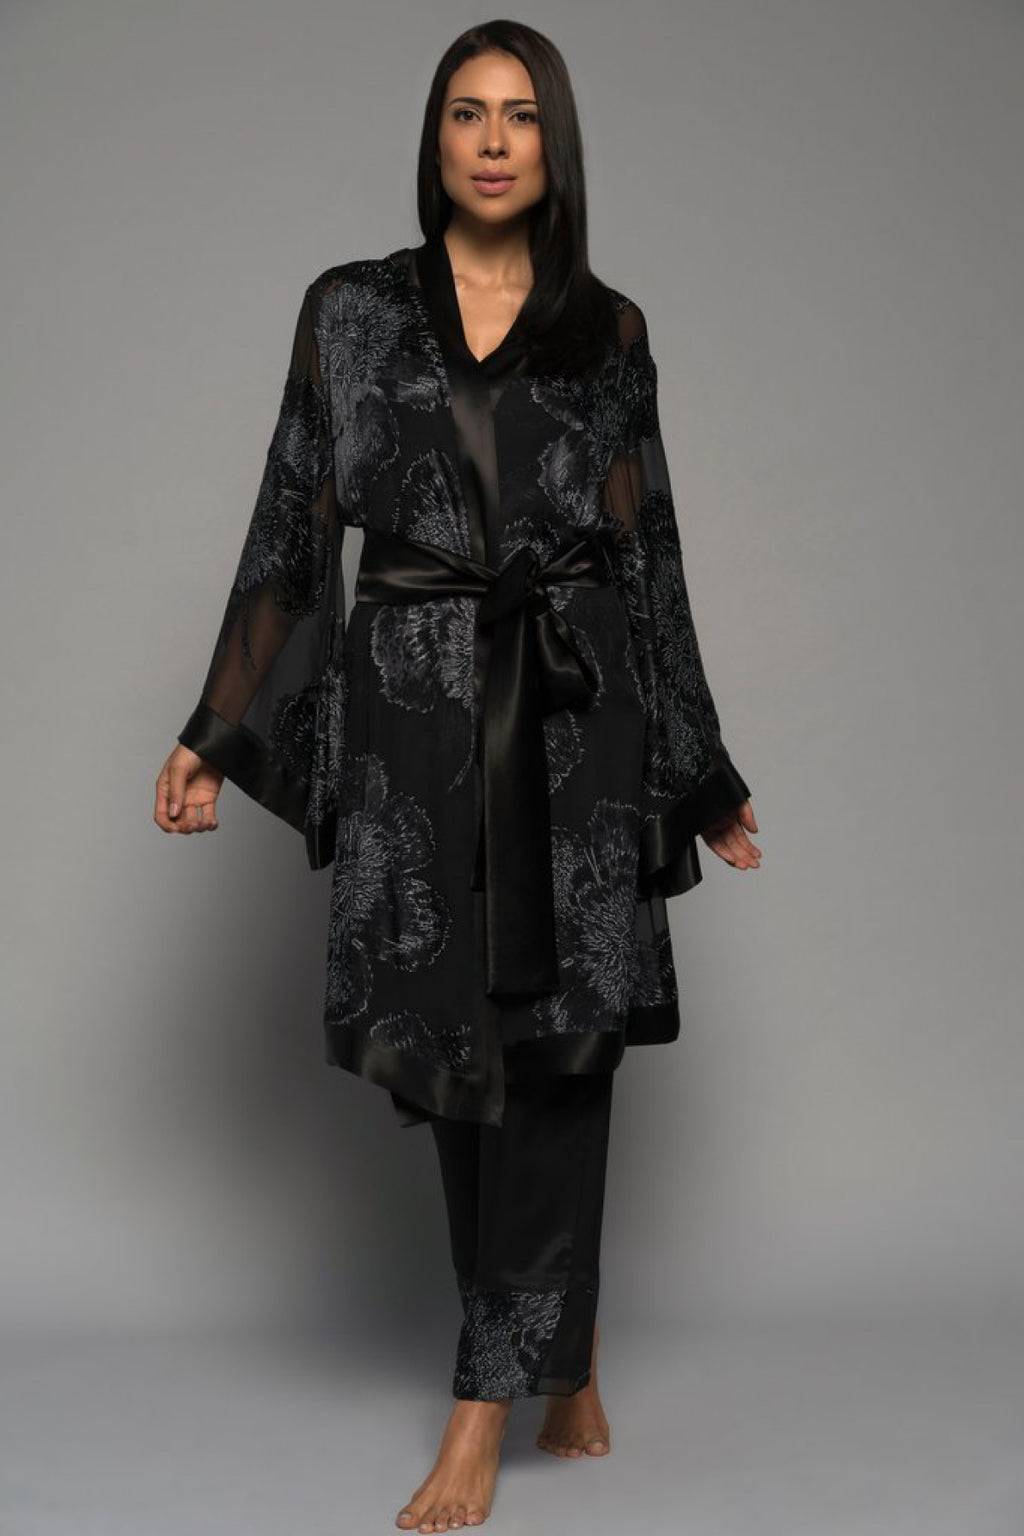 Black Poppy Satin Devorè Kimono Robe Sleepwear The Fashion Advocate ethical Australian fashion designer boutique Melbourne sustainable clothes